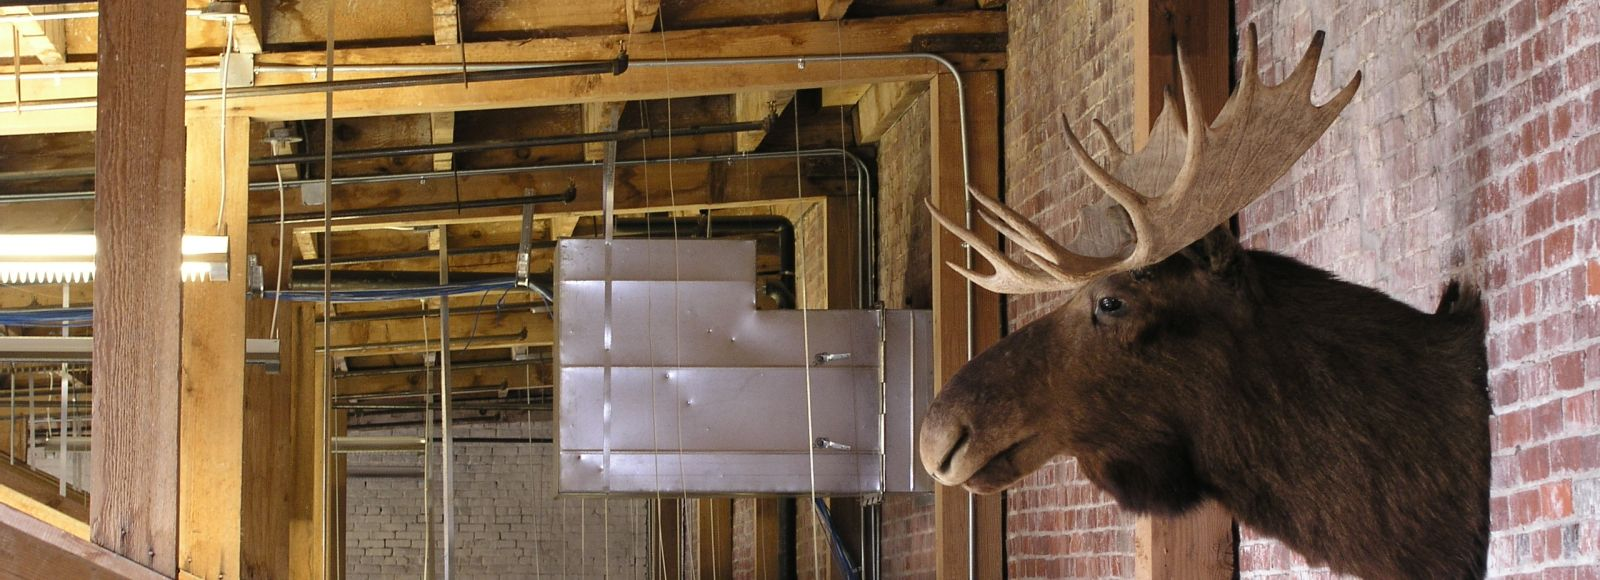 Moose mounted on the wall in the Ecotrust building, Natural Capital Center